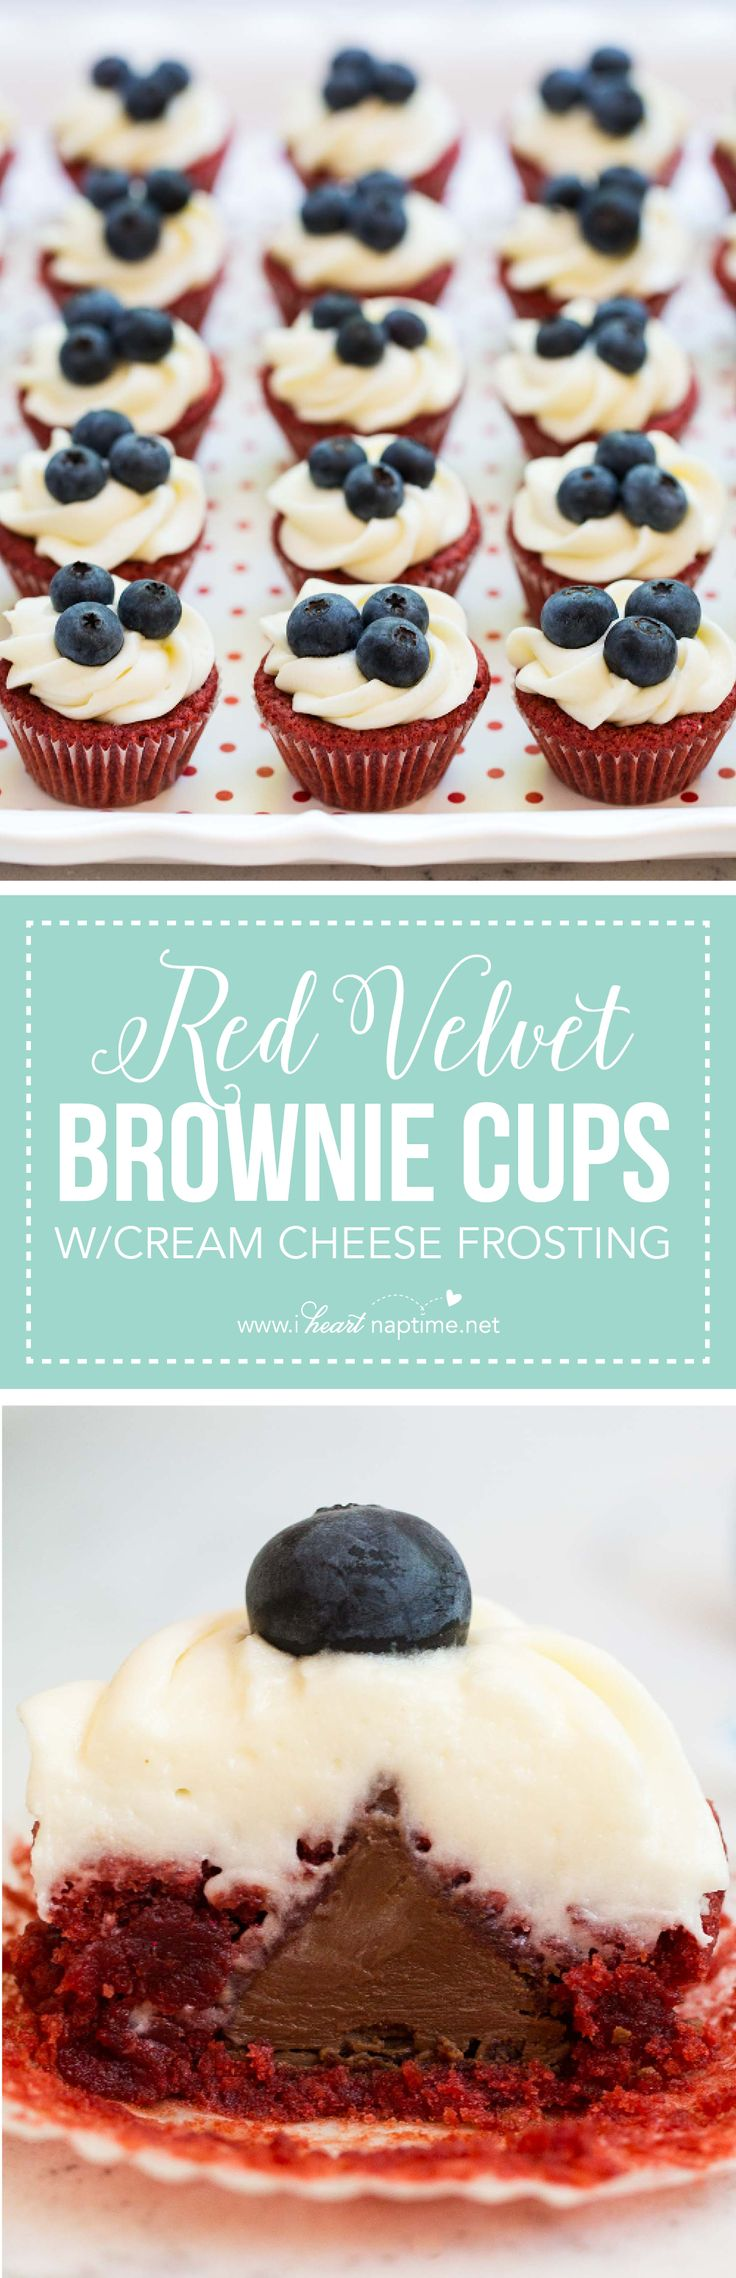 Red Velvet Brownie Cups Recipe with Cream Cheese Frosting and a HERSHEY'S KISS chocolate inside -YUM!!